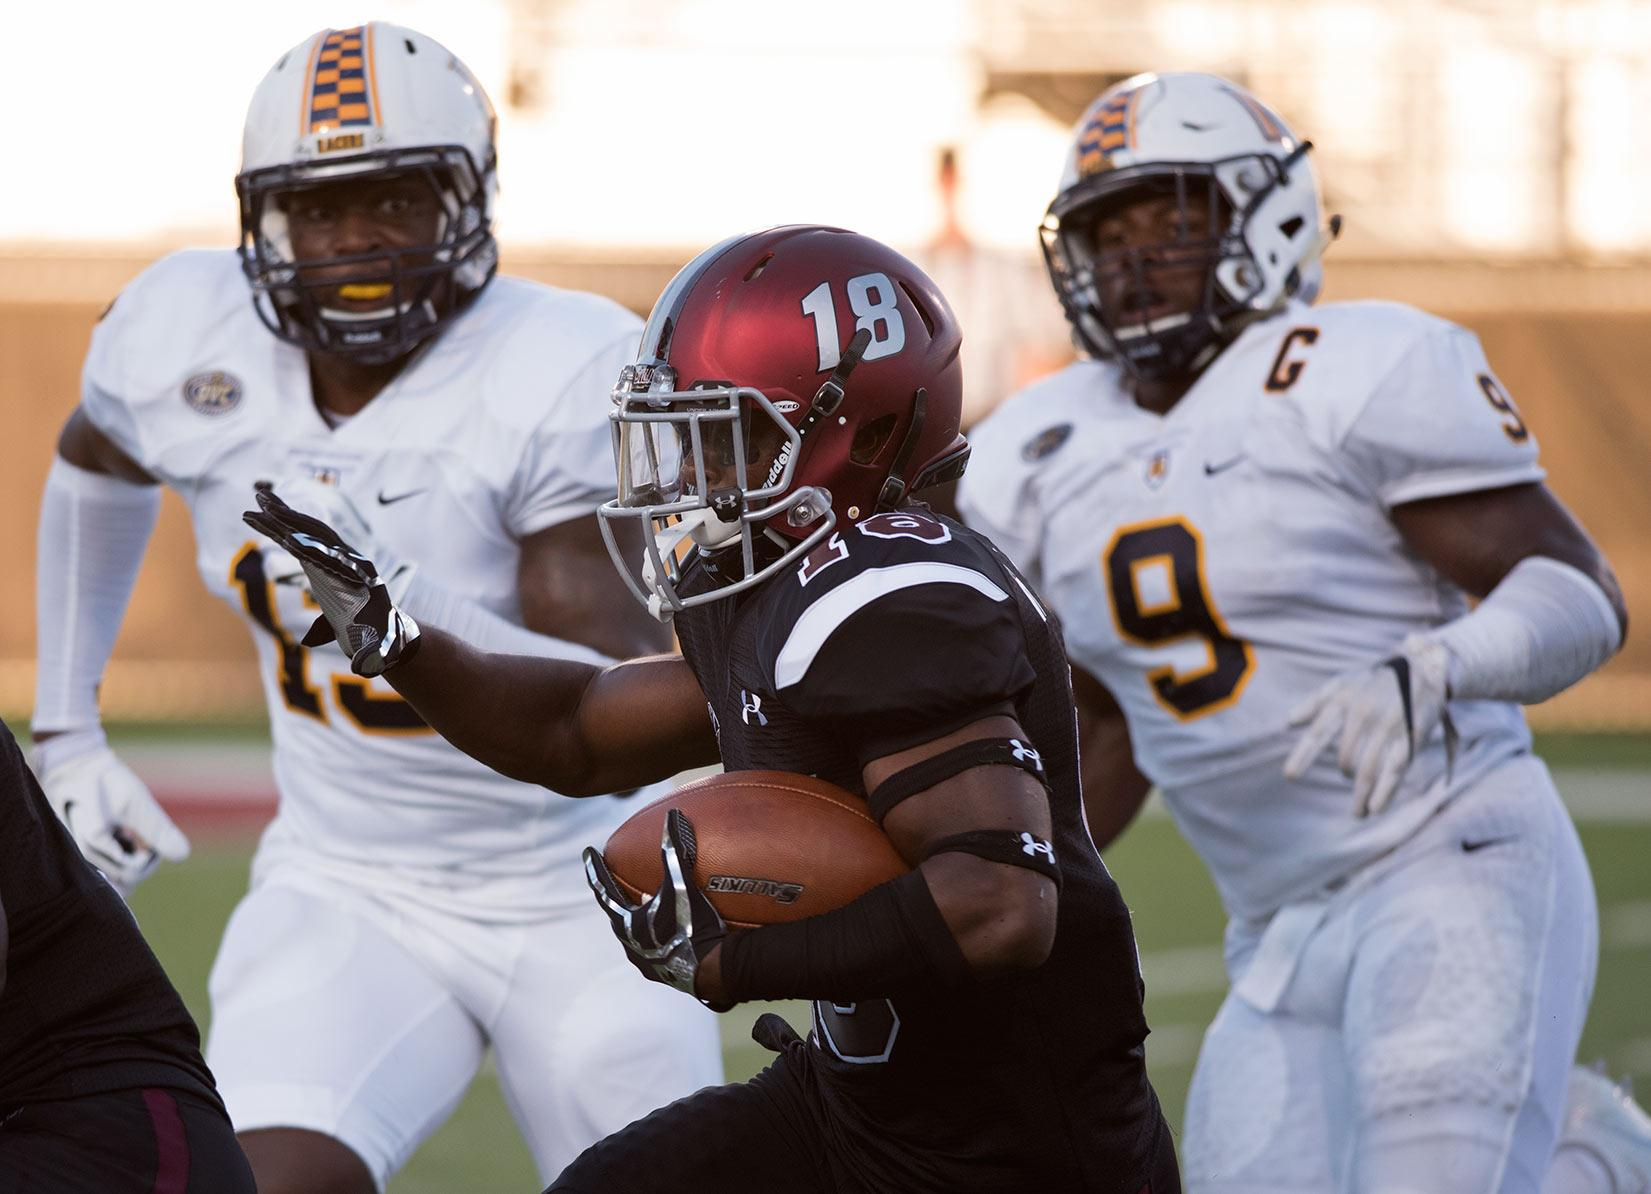 Freshman running back D.J. Davis runs with the ball during the first half of the Salukis' matchup against Murray State on Saturday, Sept. 17, 2016, at Saluki Stadium. (Jacob Wiegand | @JacobWiegand_DE)